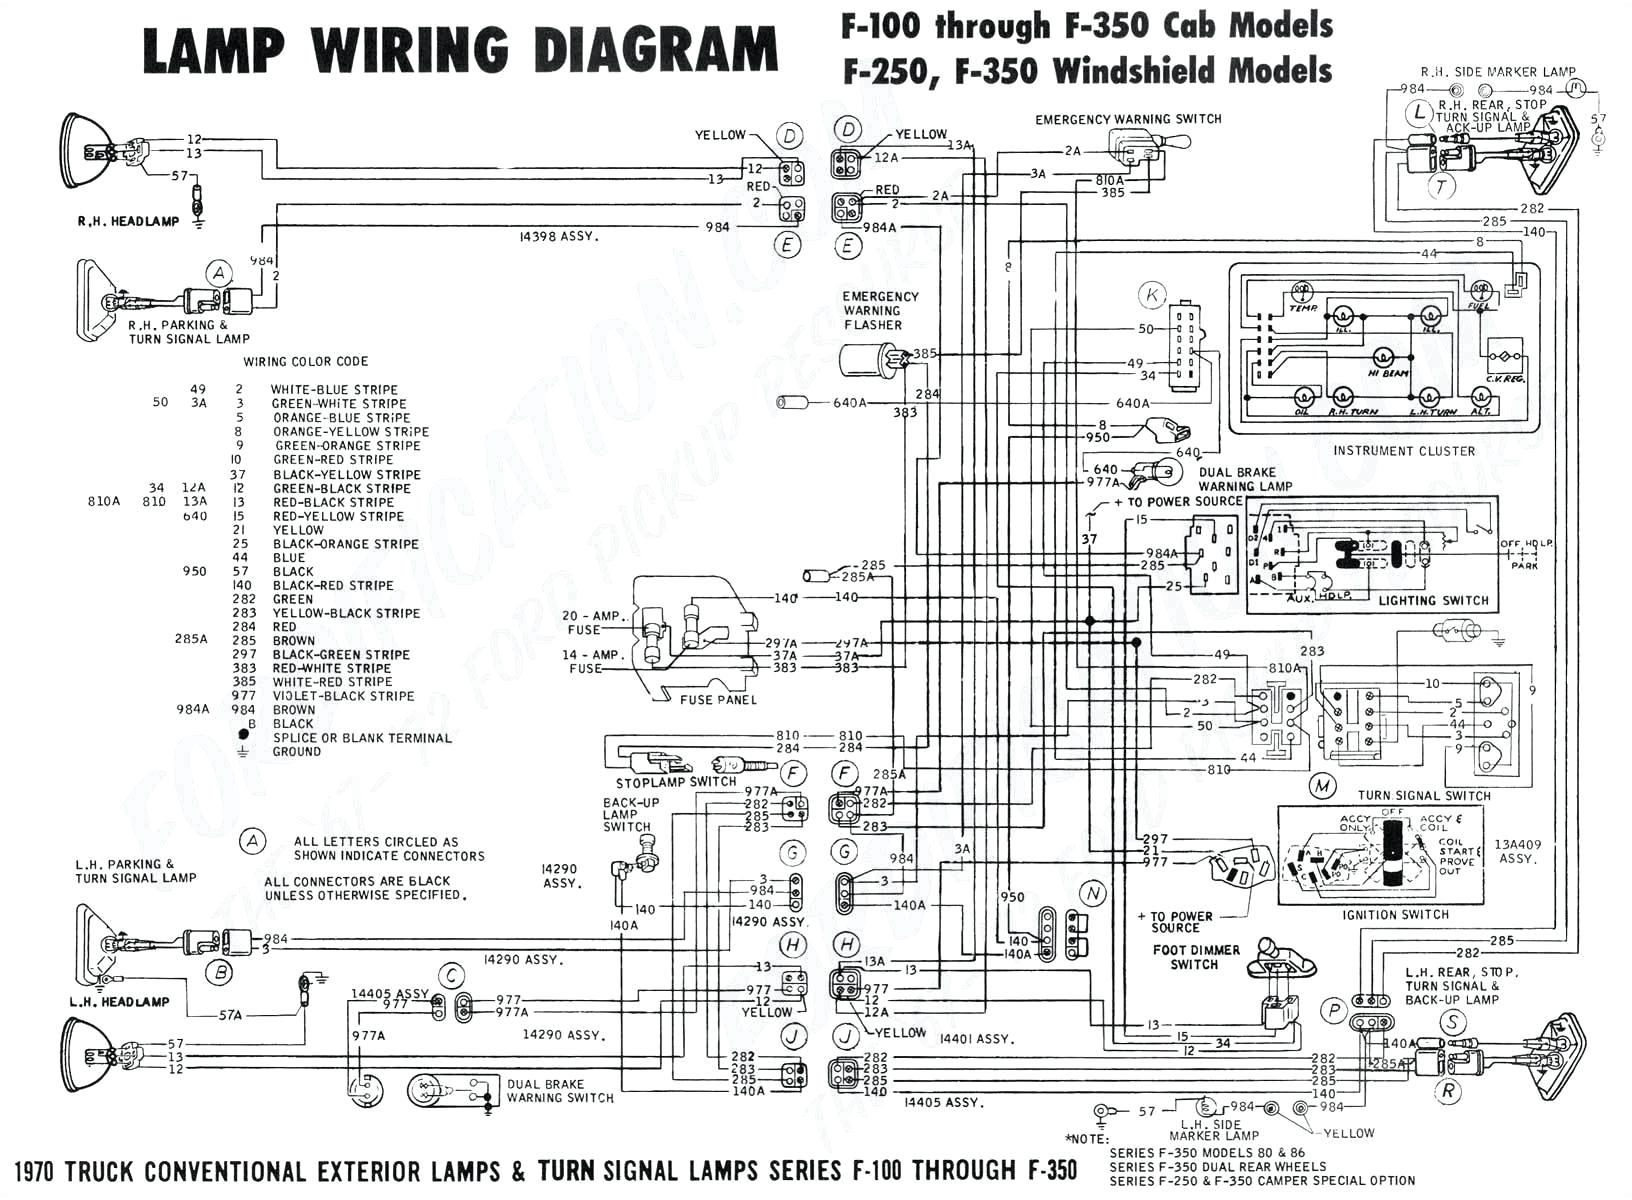 2003 dodge ram 2500 trailer wiring diagram thread 2005 dodge ram wiring diagram wire center u2022 rh inspeere co 1c jpg